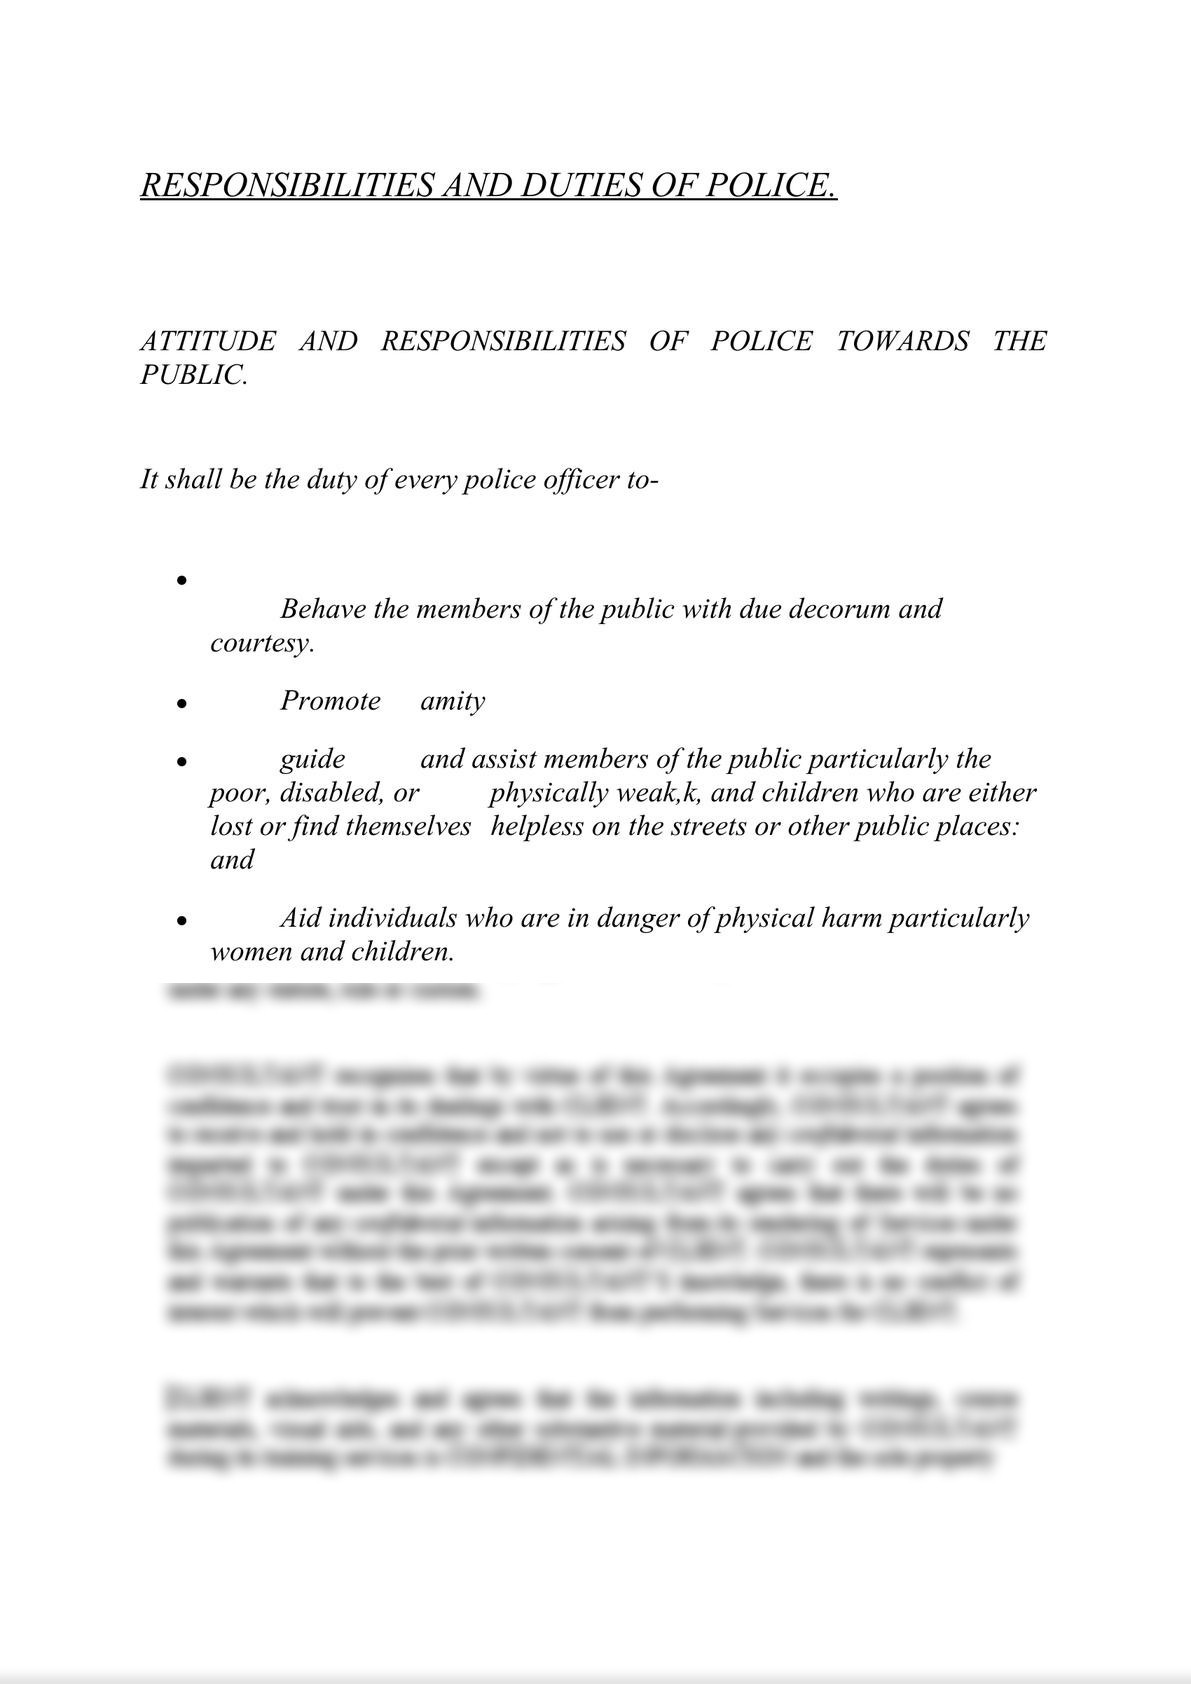 RESPONSIBILITIES AND DUTIES OF POLICE.-0